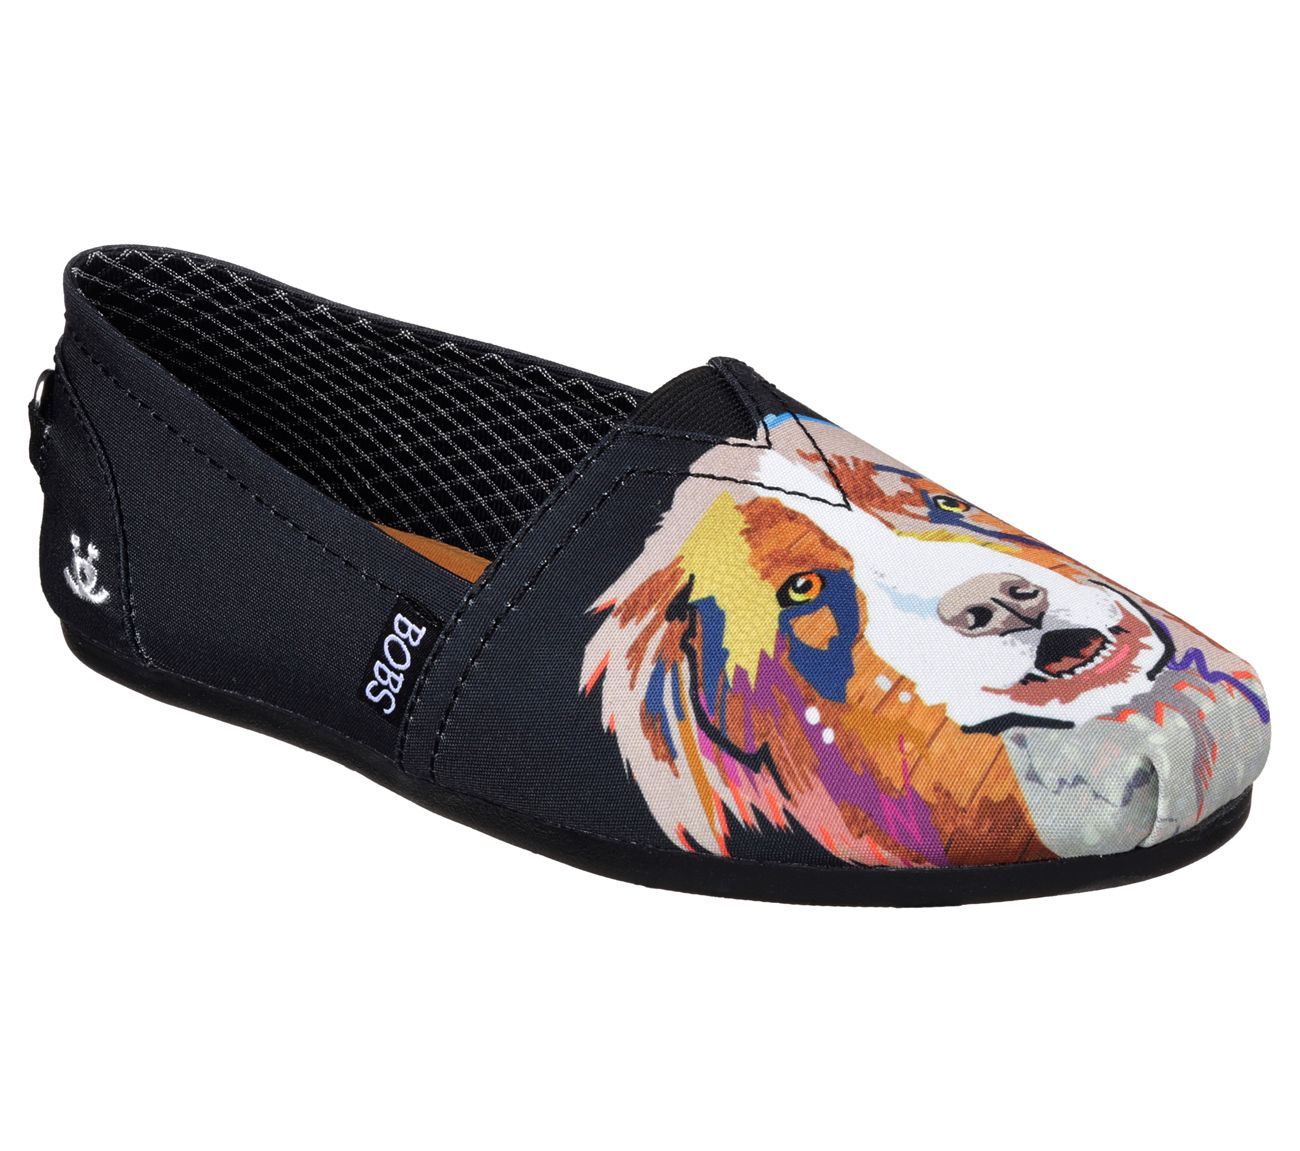 bobs from skechers bobs plush